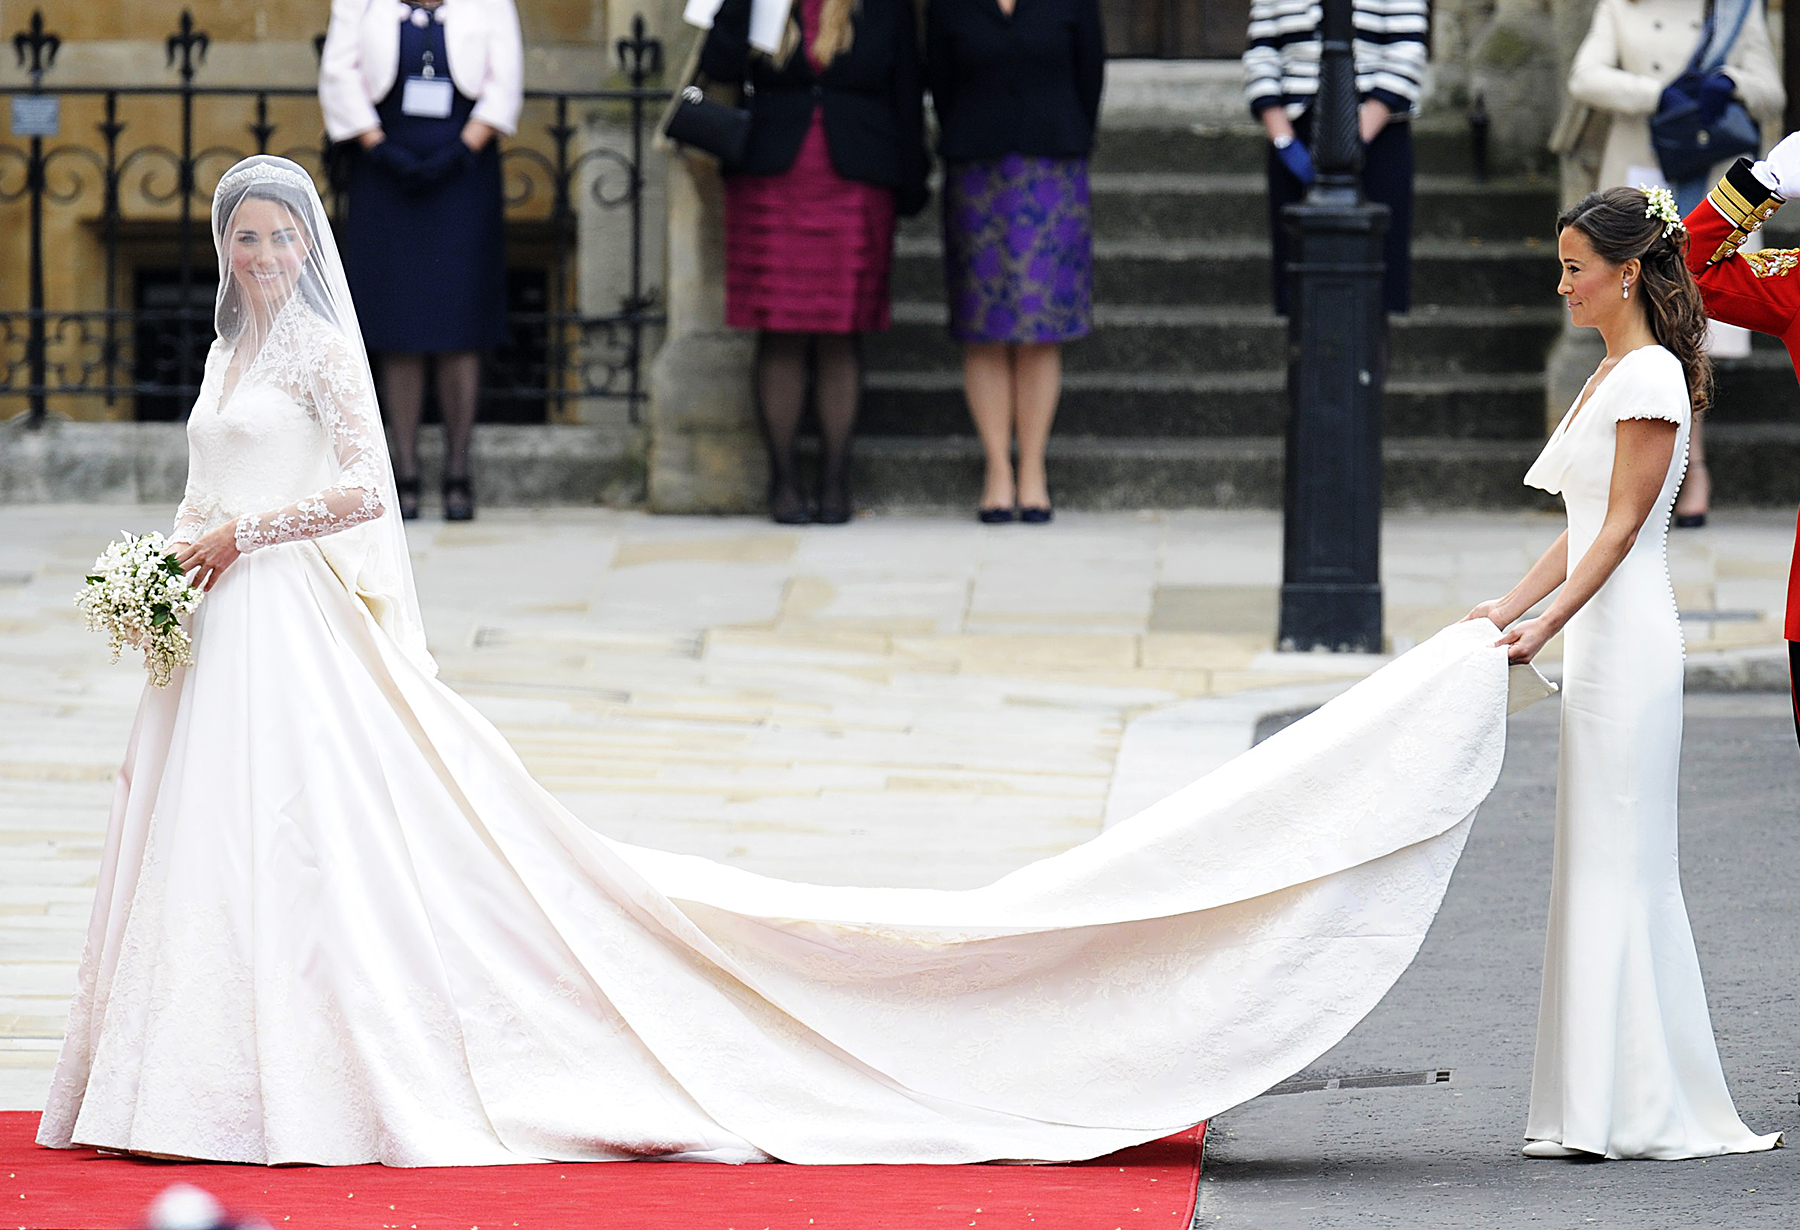 Pippa Middleton carrying Kate Middleton's wedding dress train